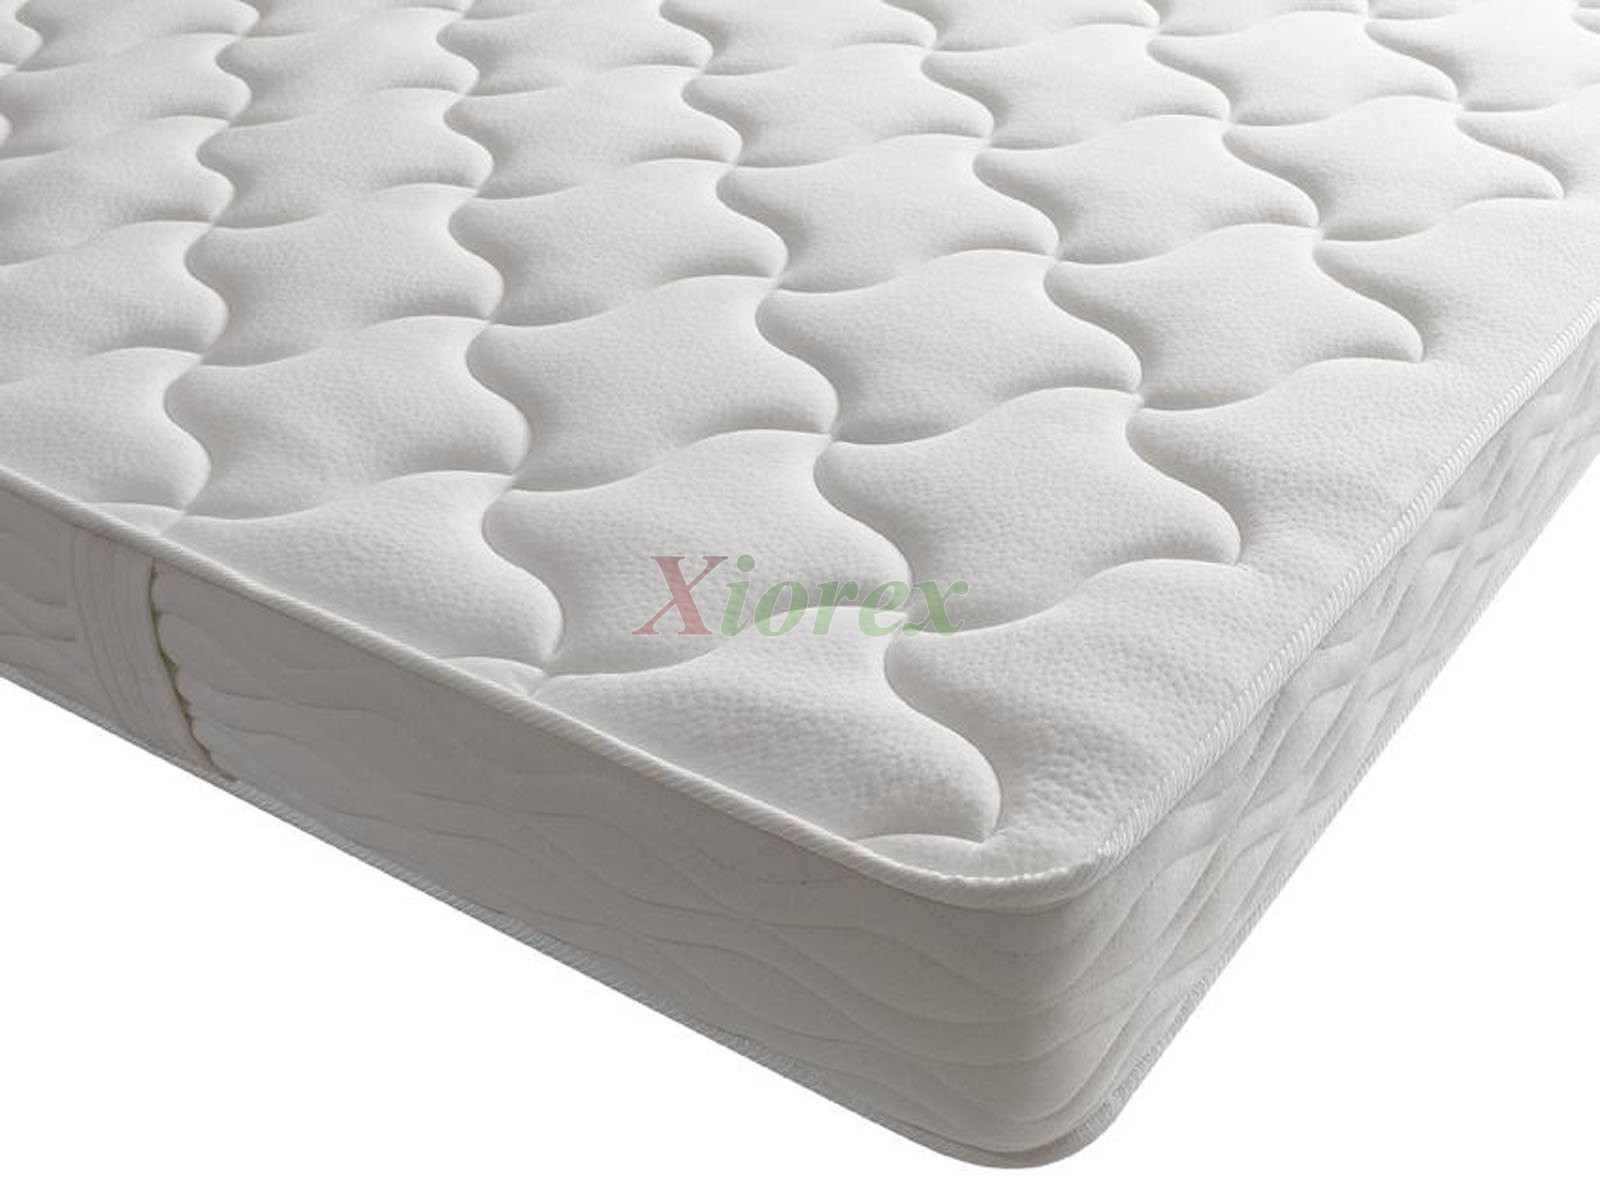 Orion Anti Allergen Fungal Bacterial Foam Mattress Xiorex